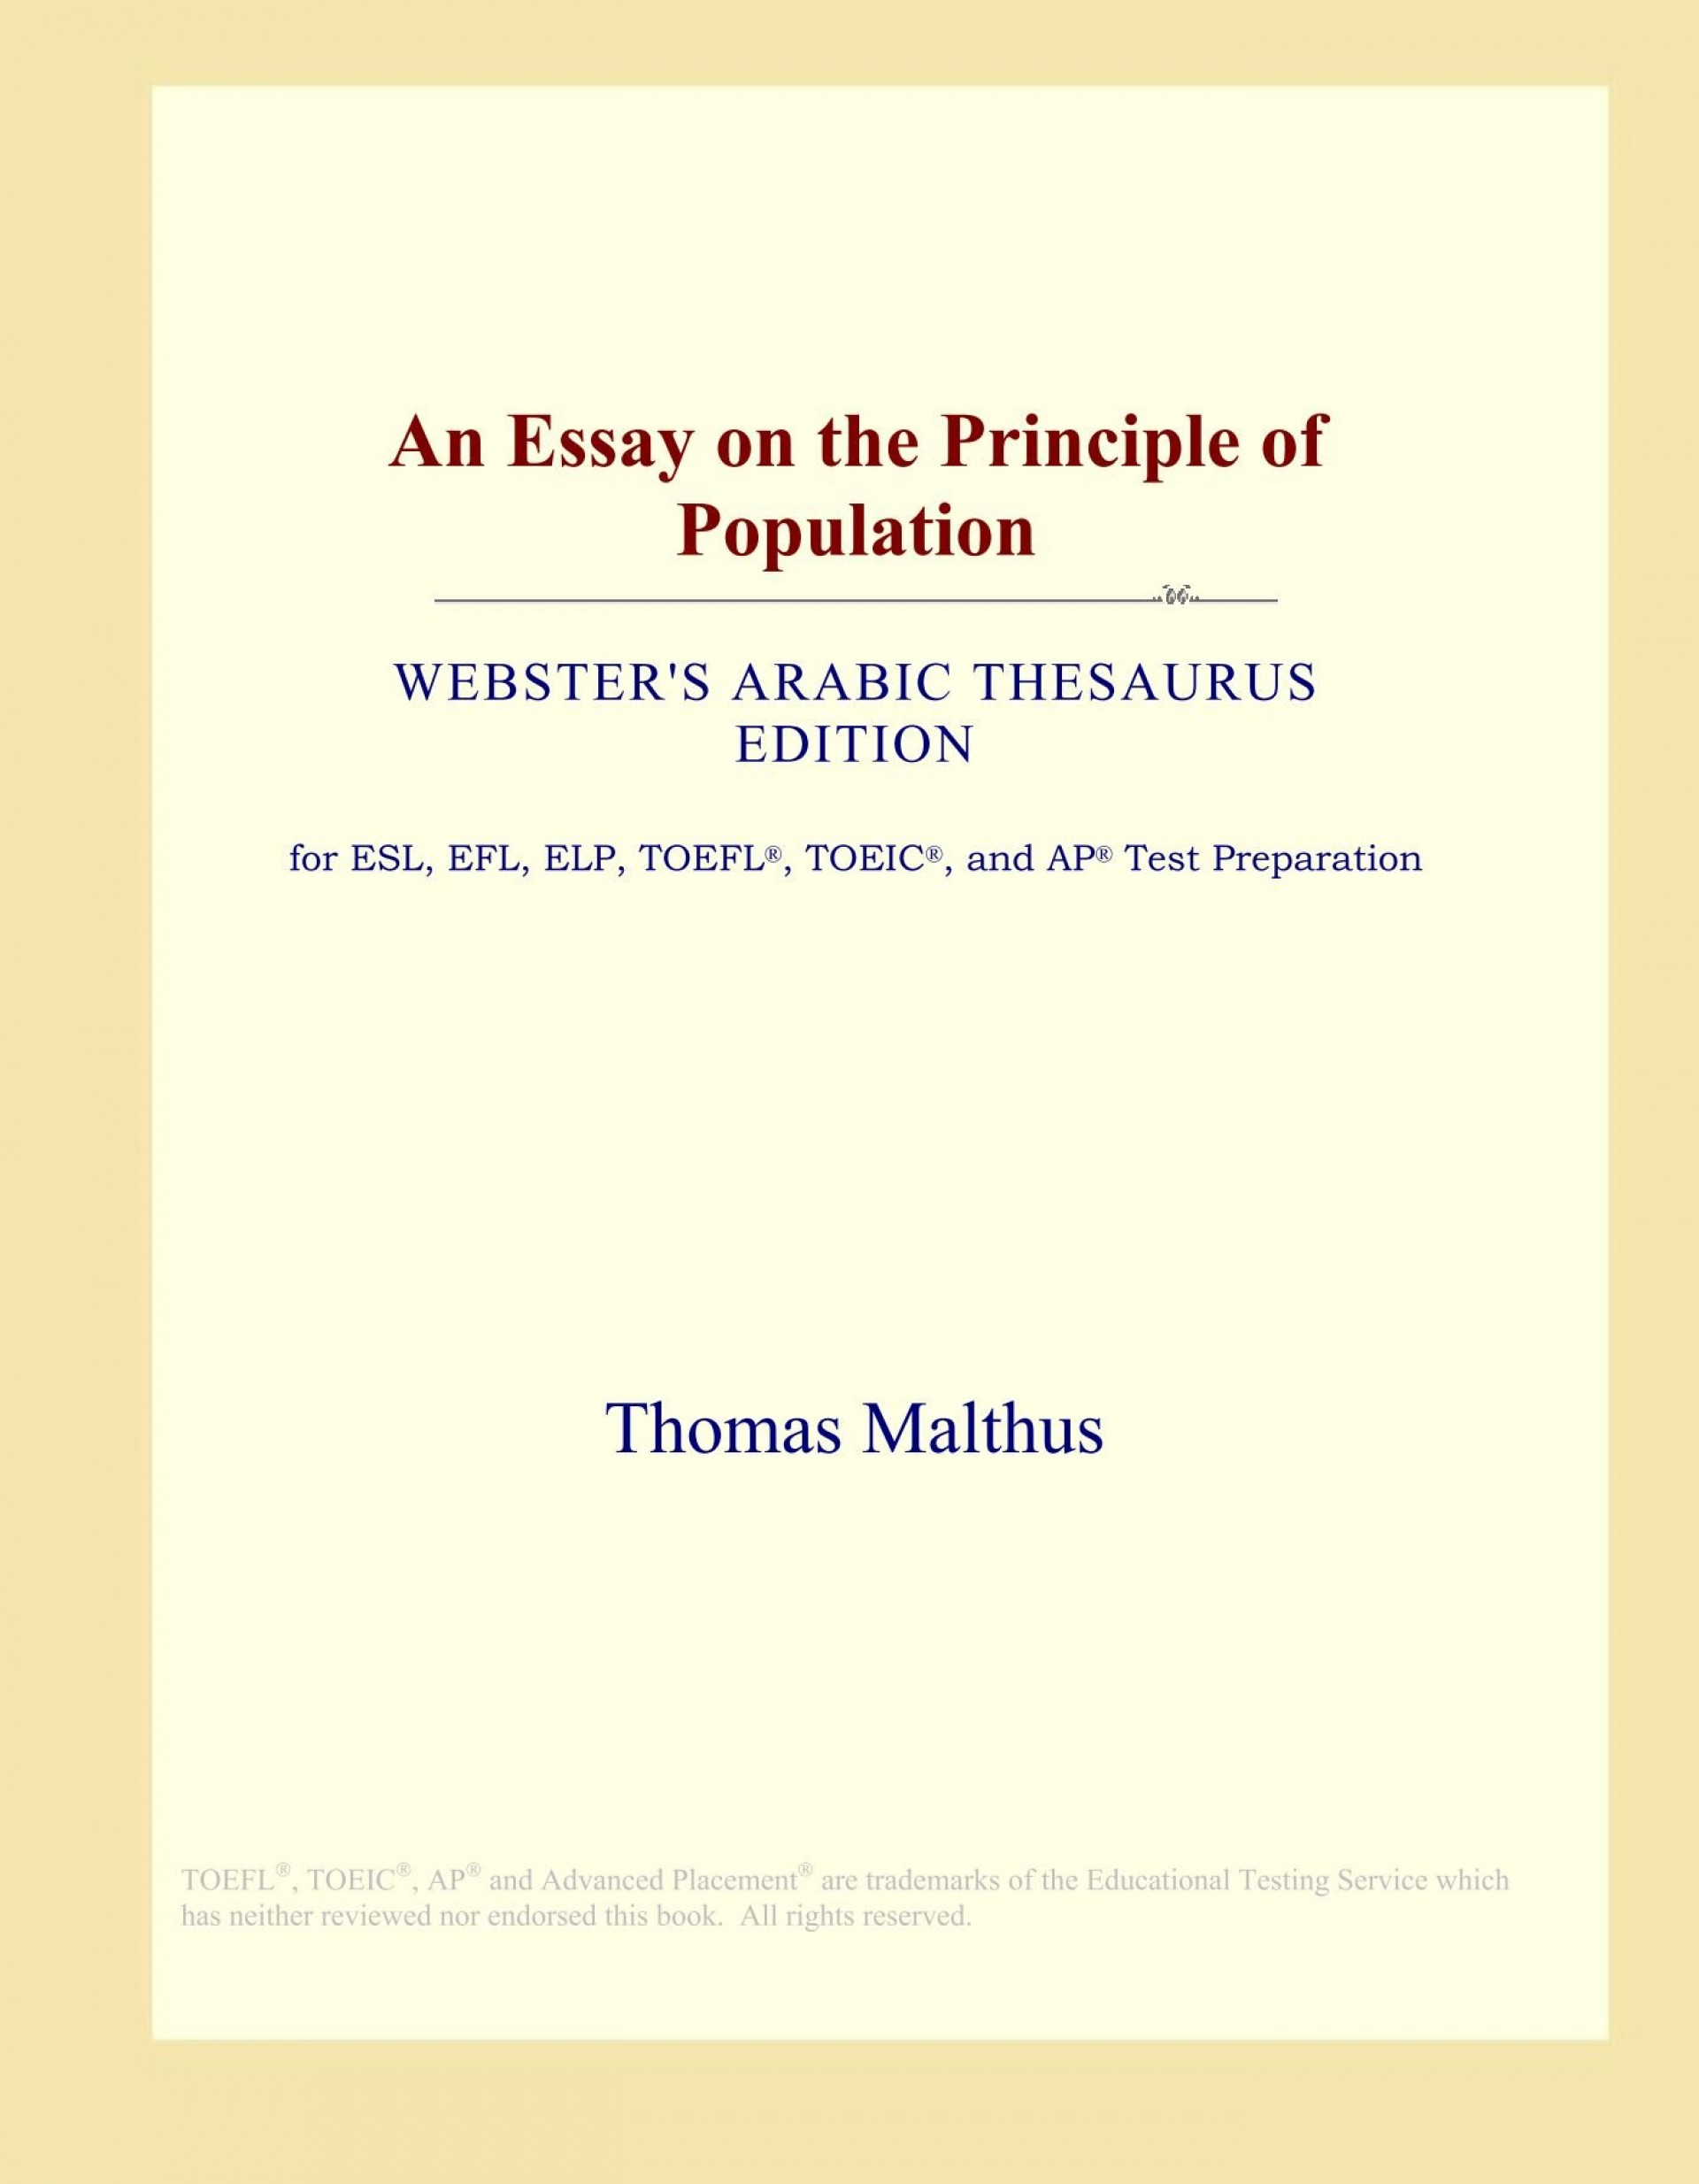 020 61groeunvgl Essay Example An On The Principle Of Fascinating Population By Thomas Malthus Pdf In Concluded Which Following 1920